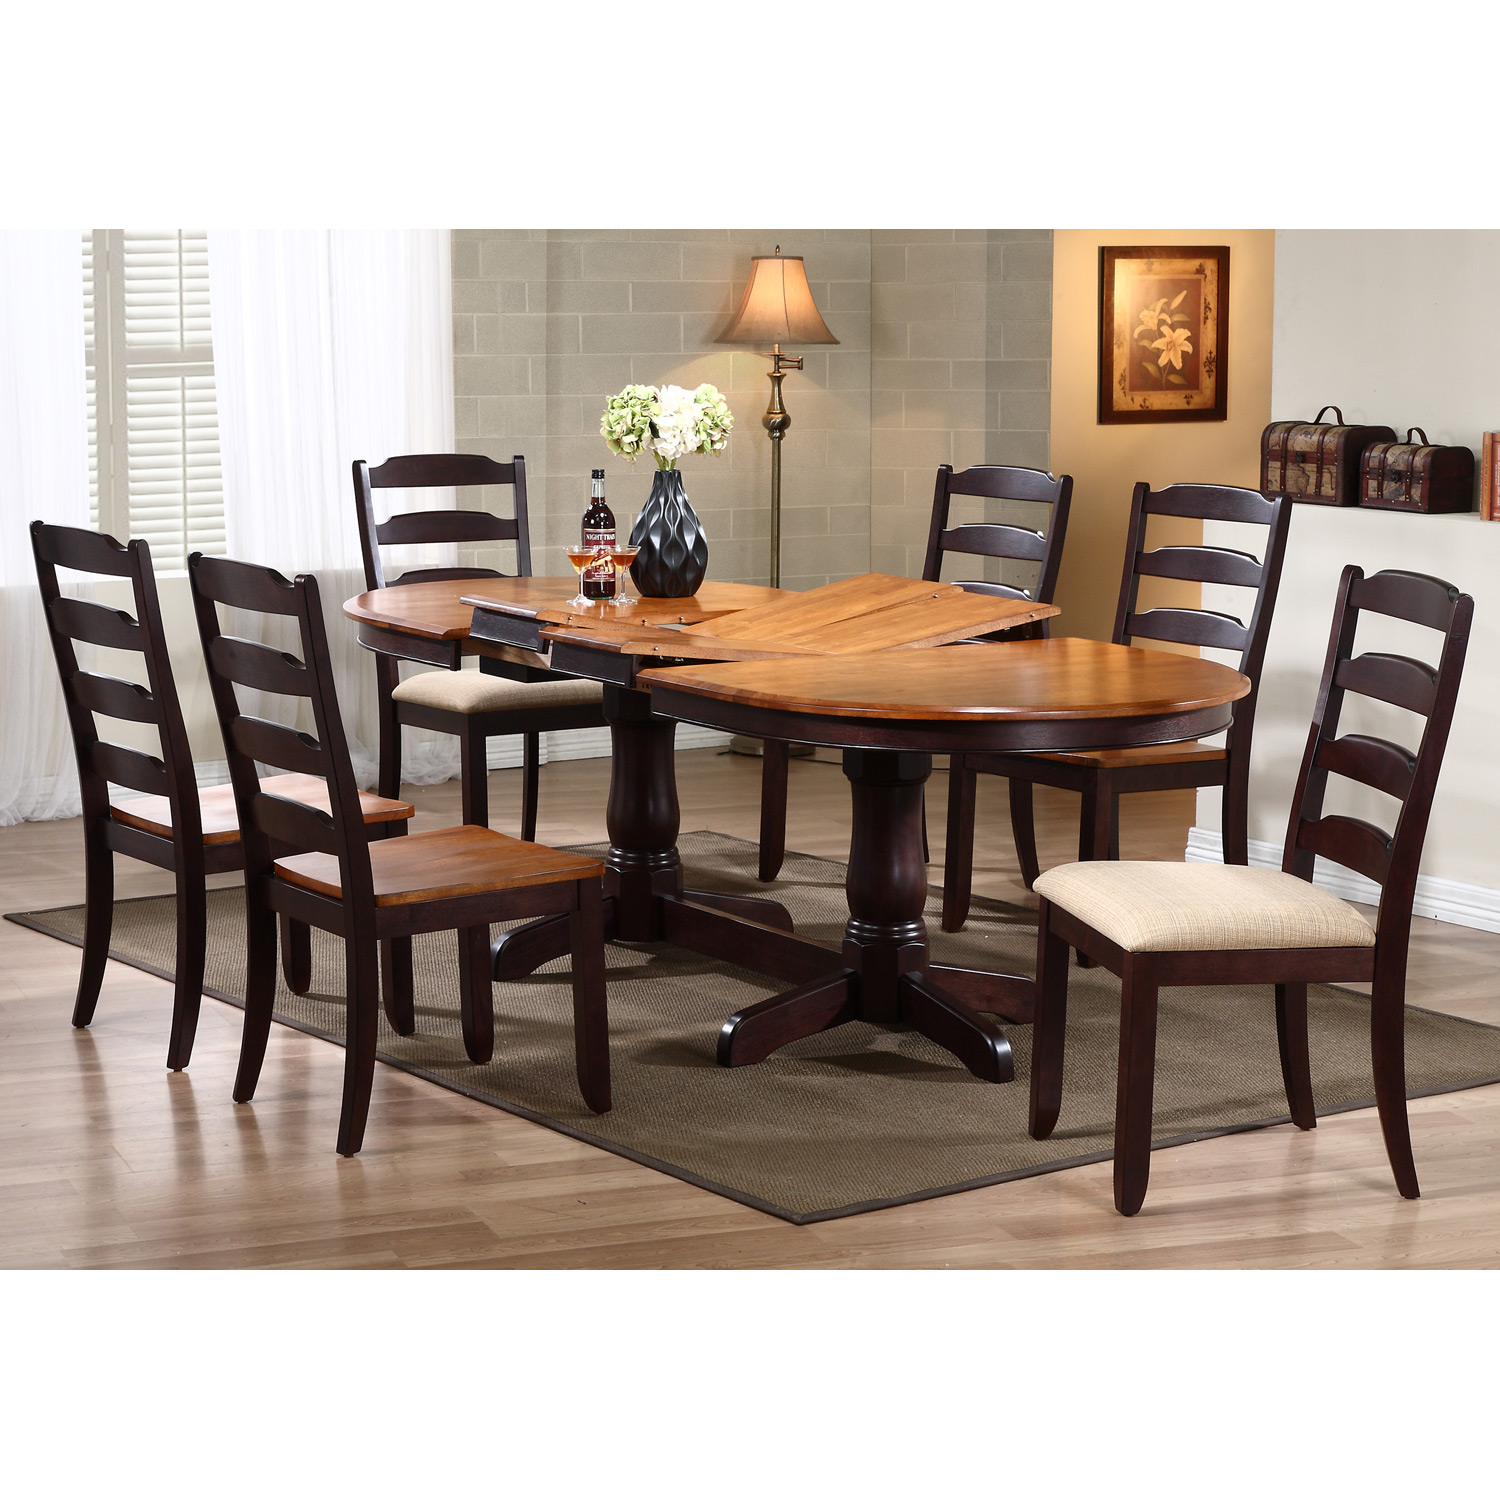 oval extending dining table and chairs. gatsby 7 piece oval extending dining set - ladder back chairs, mocha icon- table and chairs